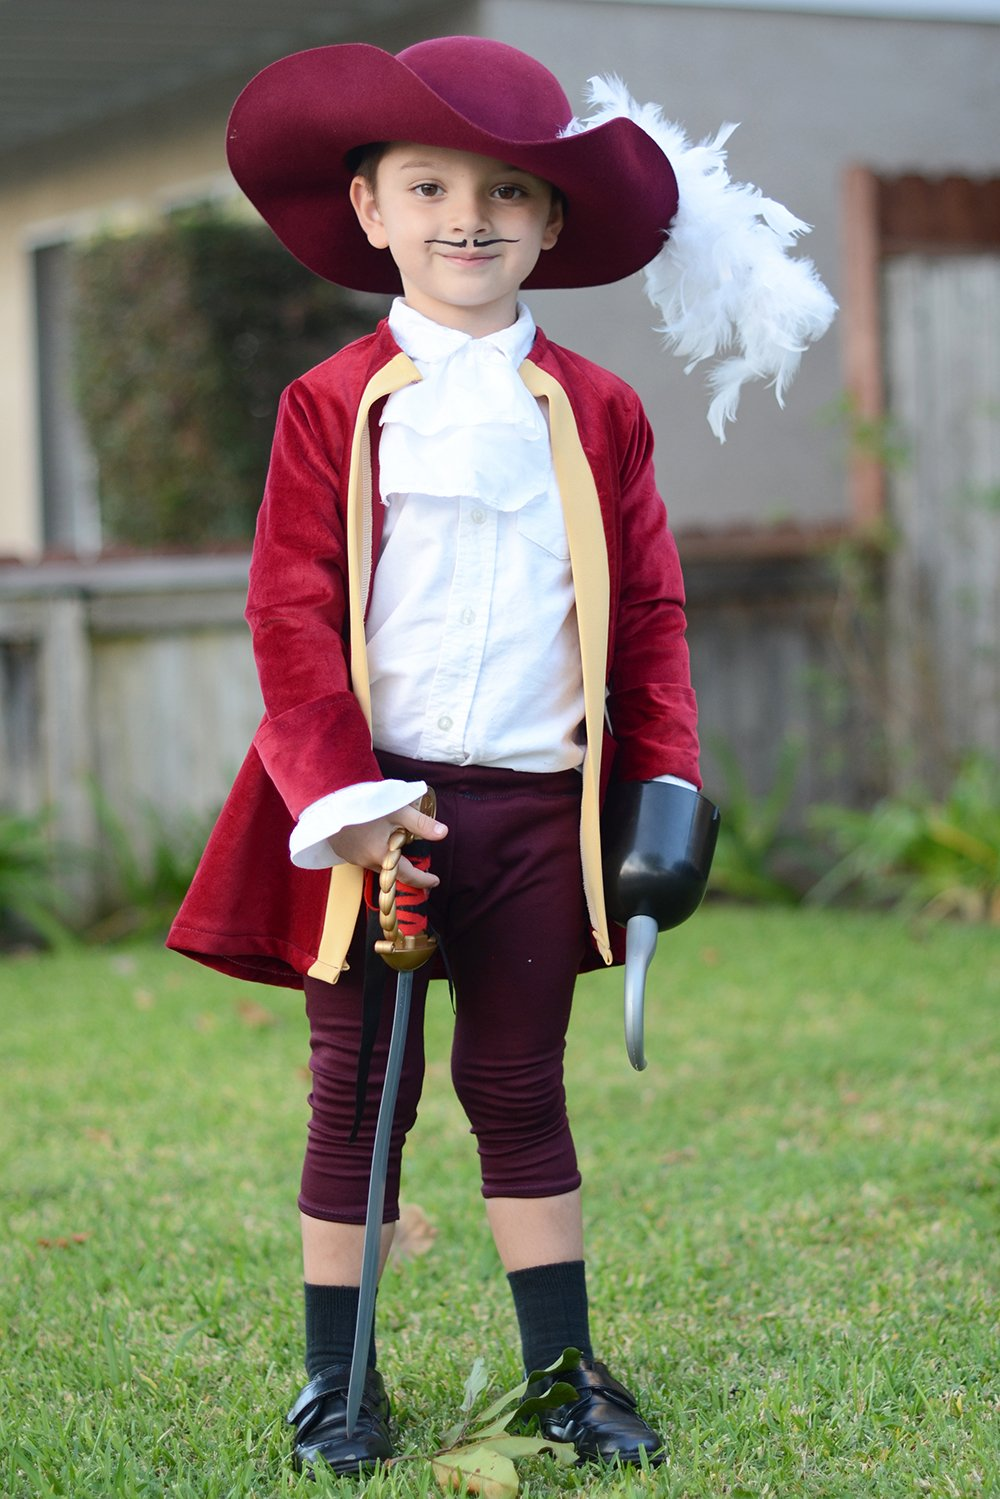 Captain Hook Costume | merricksart.com